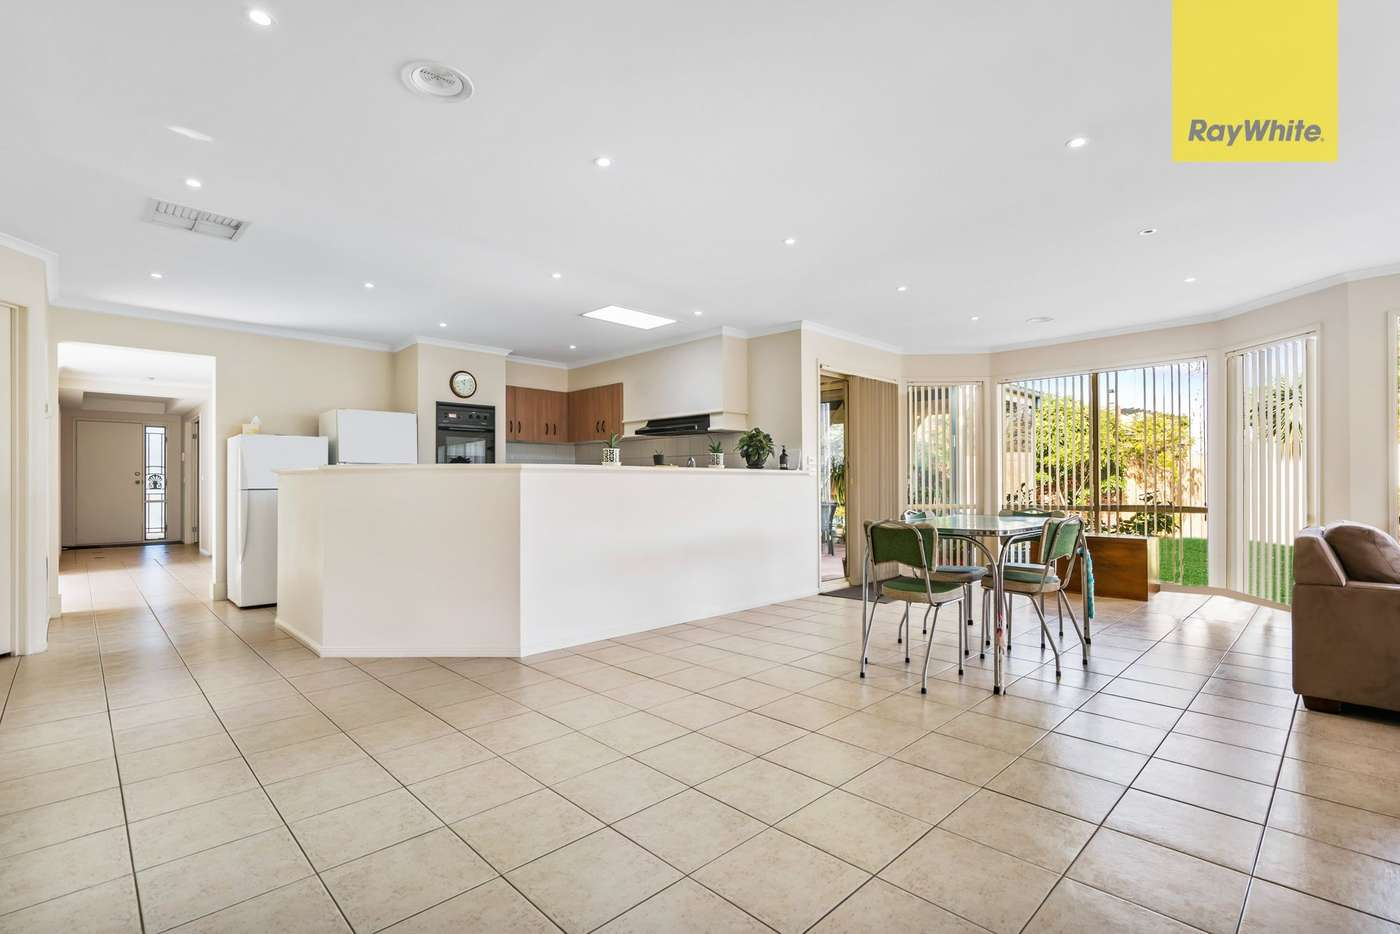 Sixth view of Homely house listing, 35 Perceval Crescent, Taylors Lakes VIC 3038